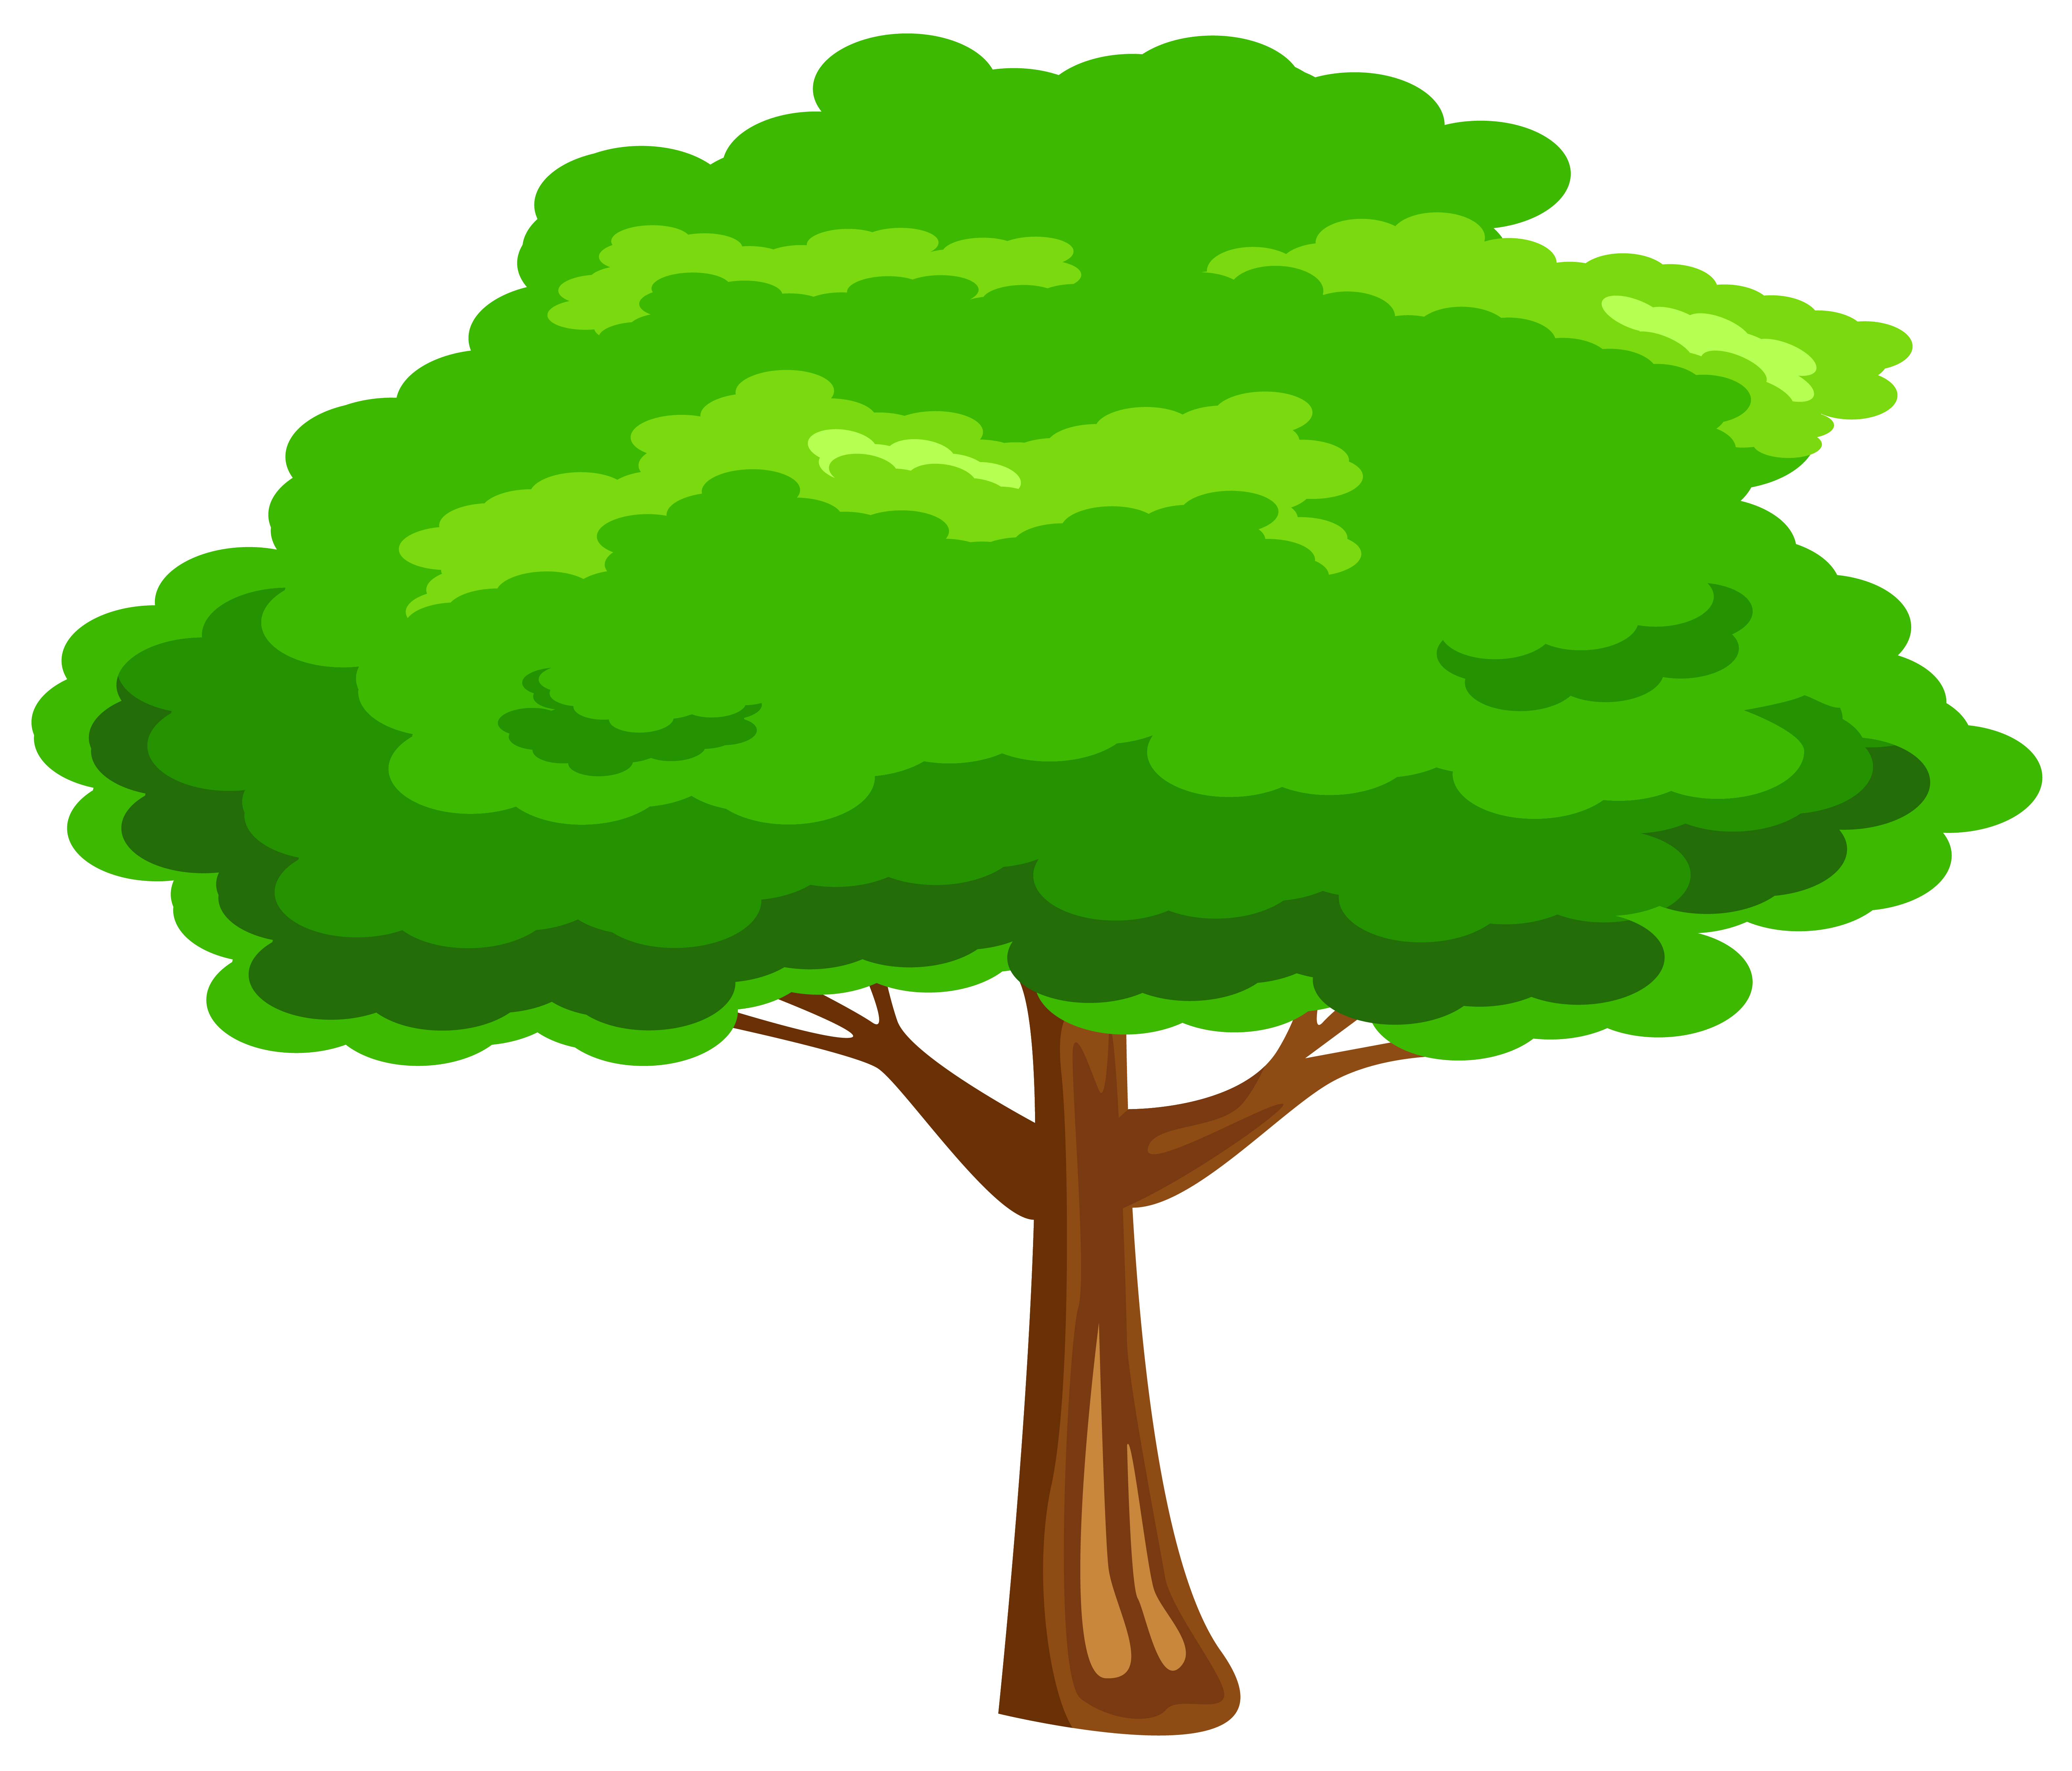 Tree png clipart. Green image gallery yopriceville